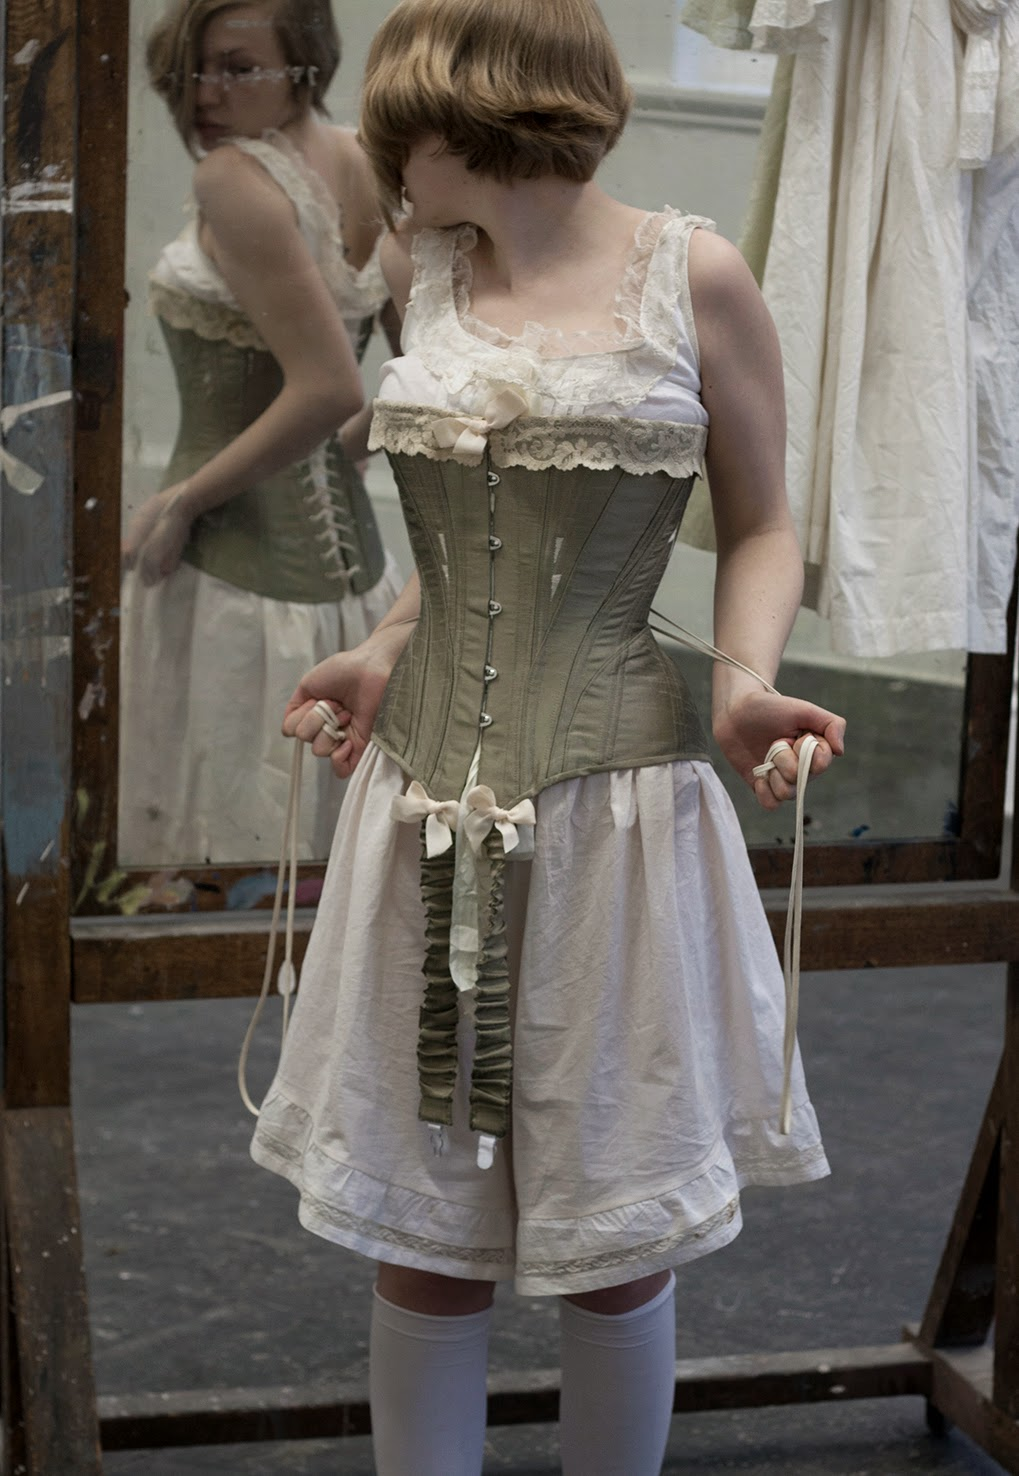 1458afb04dc7 Edwardian Corset and Combinations | Handmaid's Trade